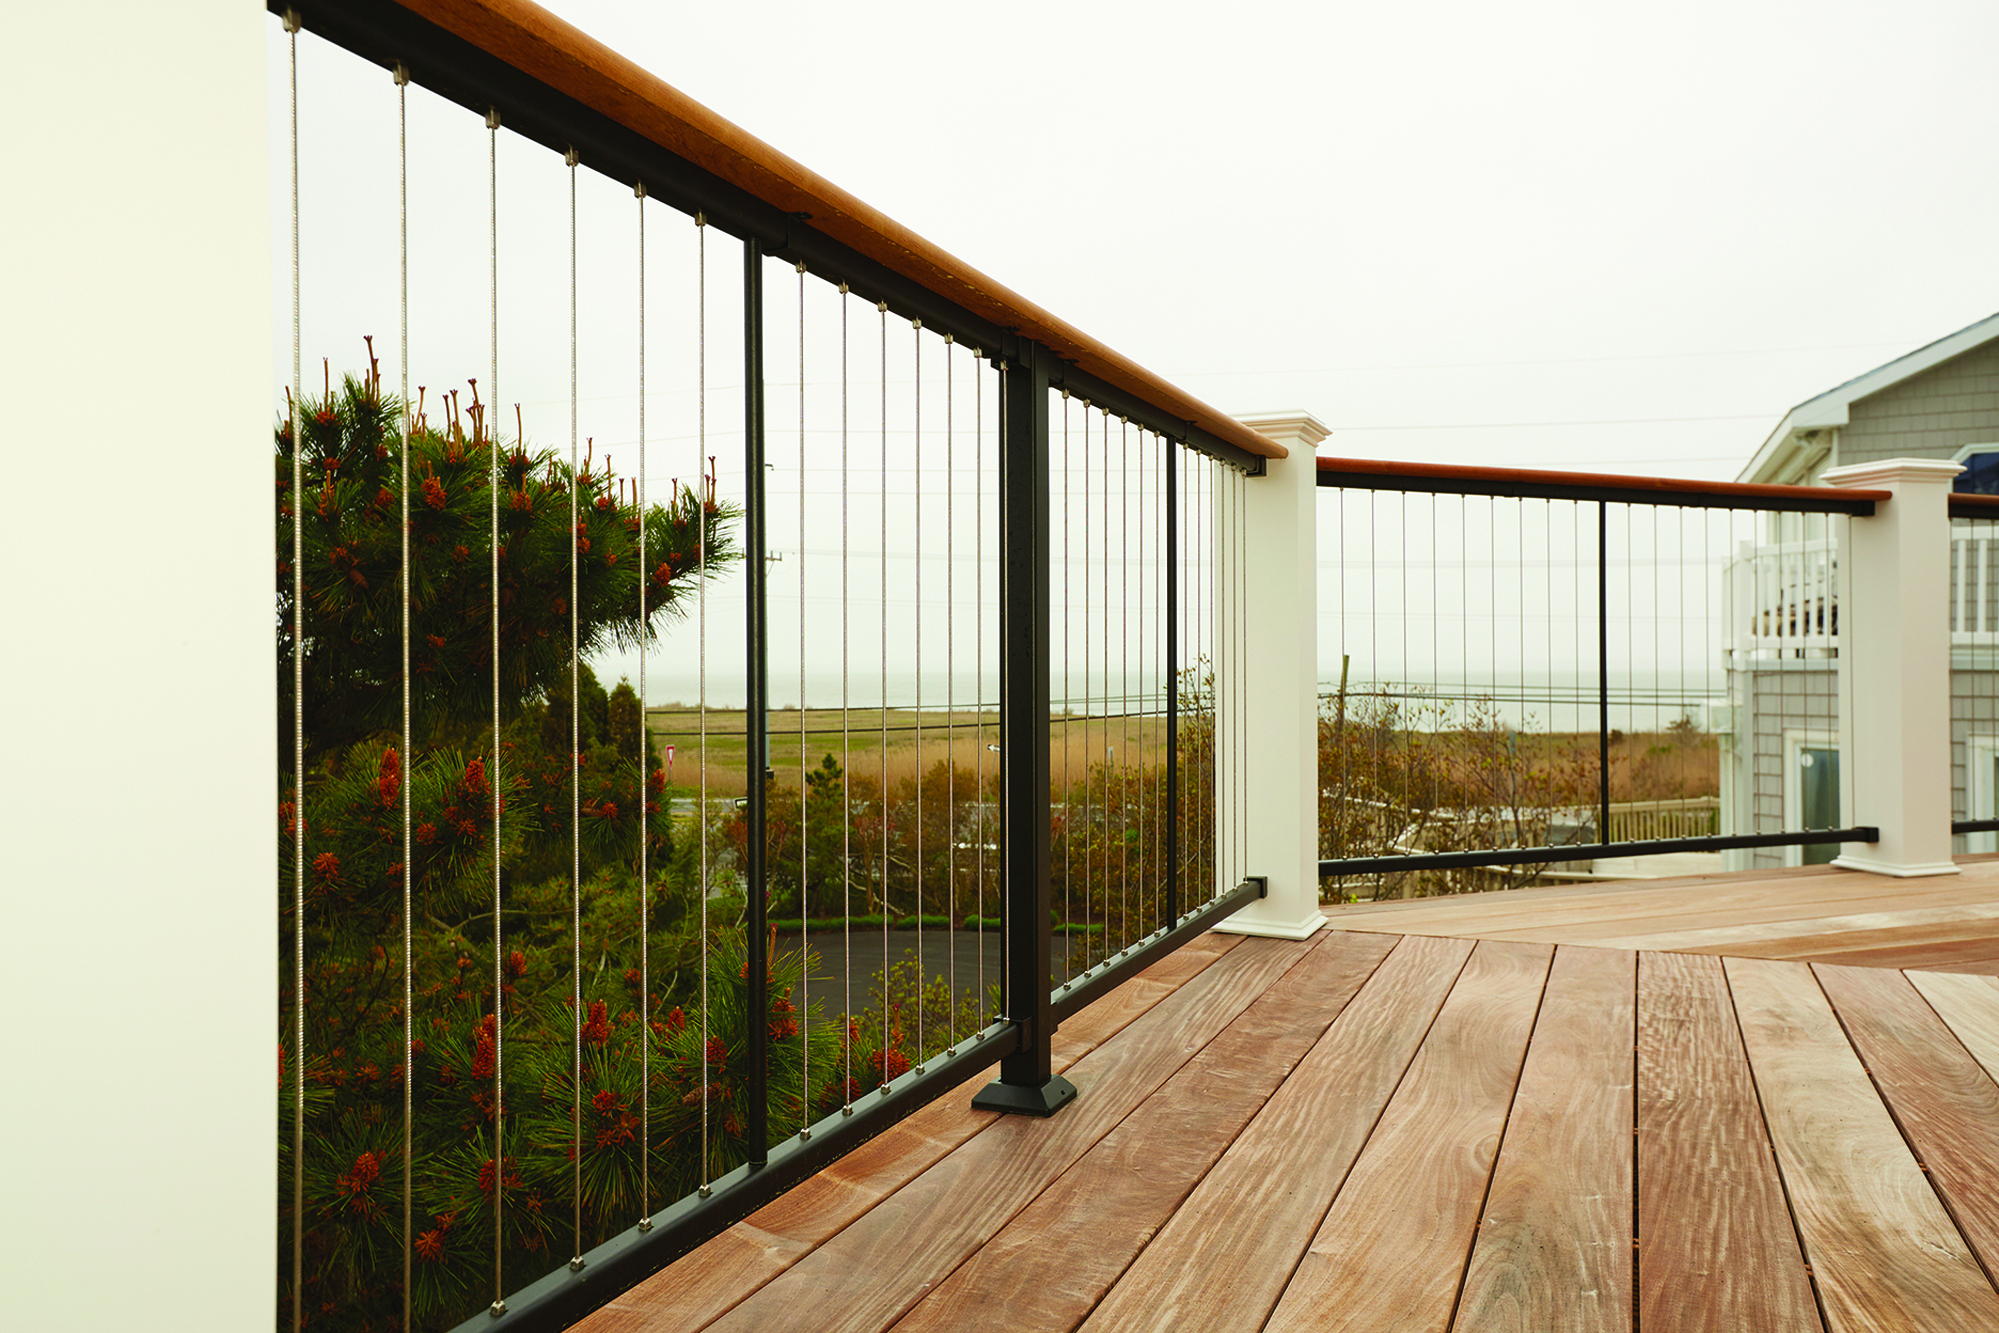 Vertical Cable Rail Professional Deck Builder Fencing